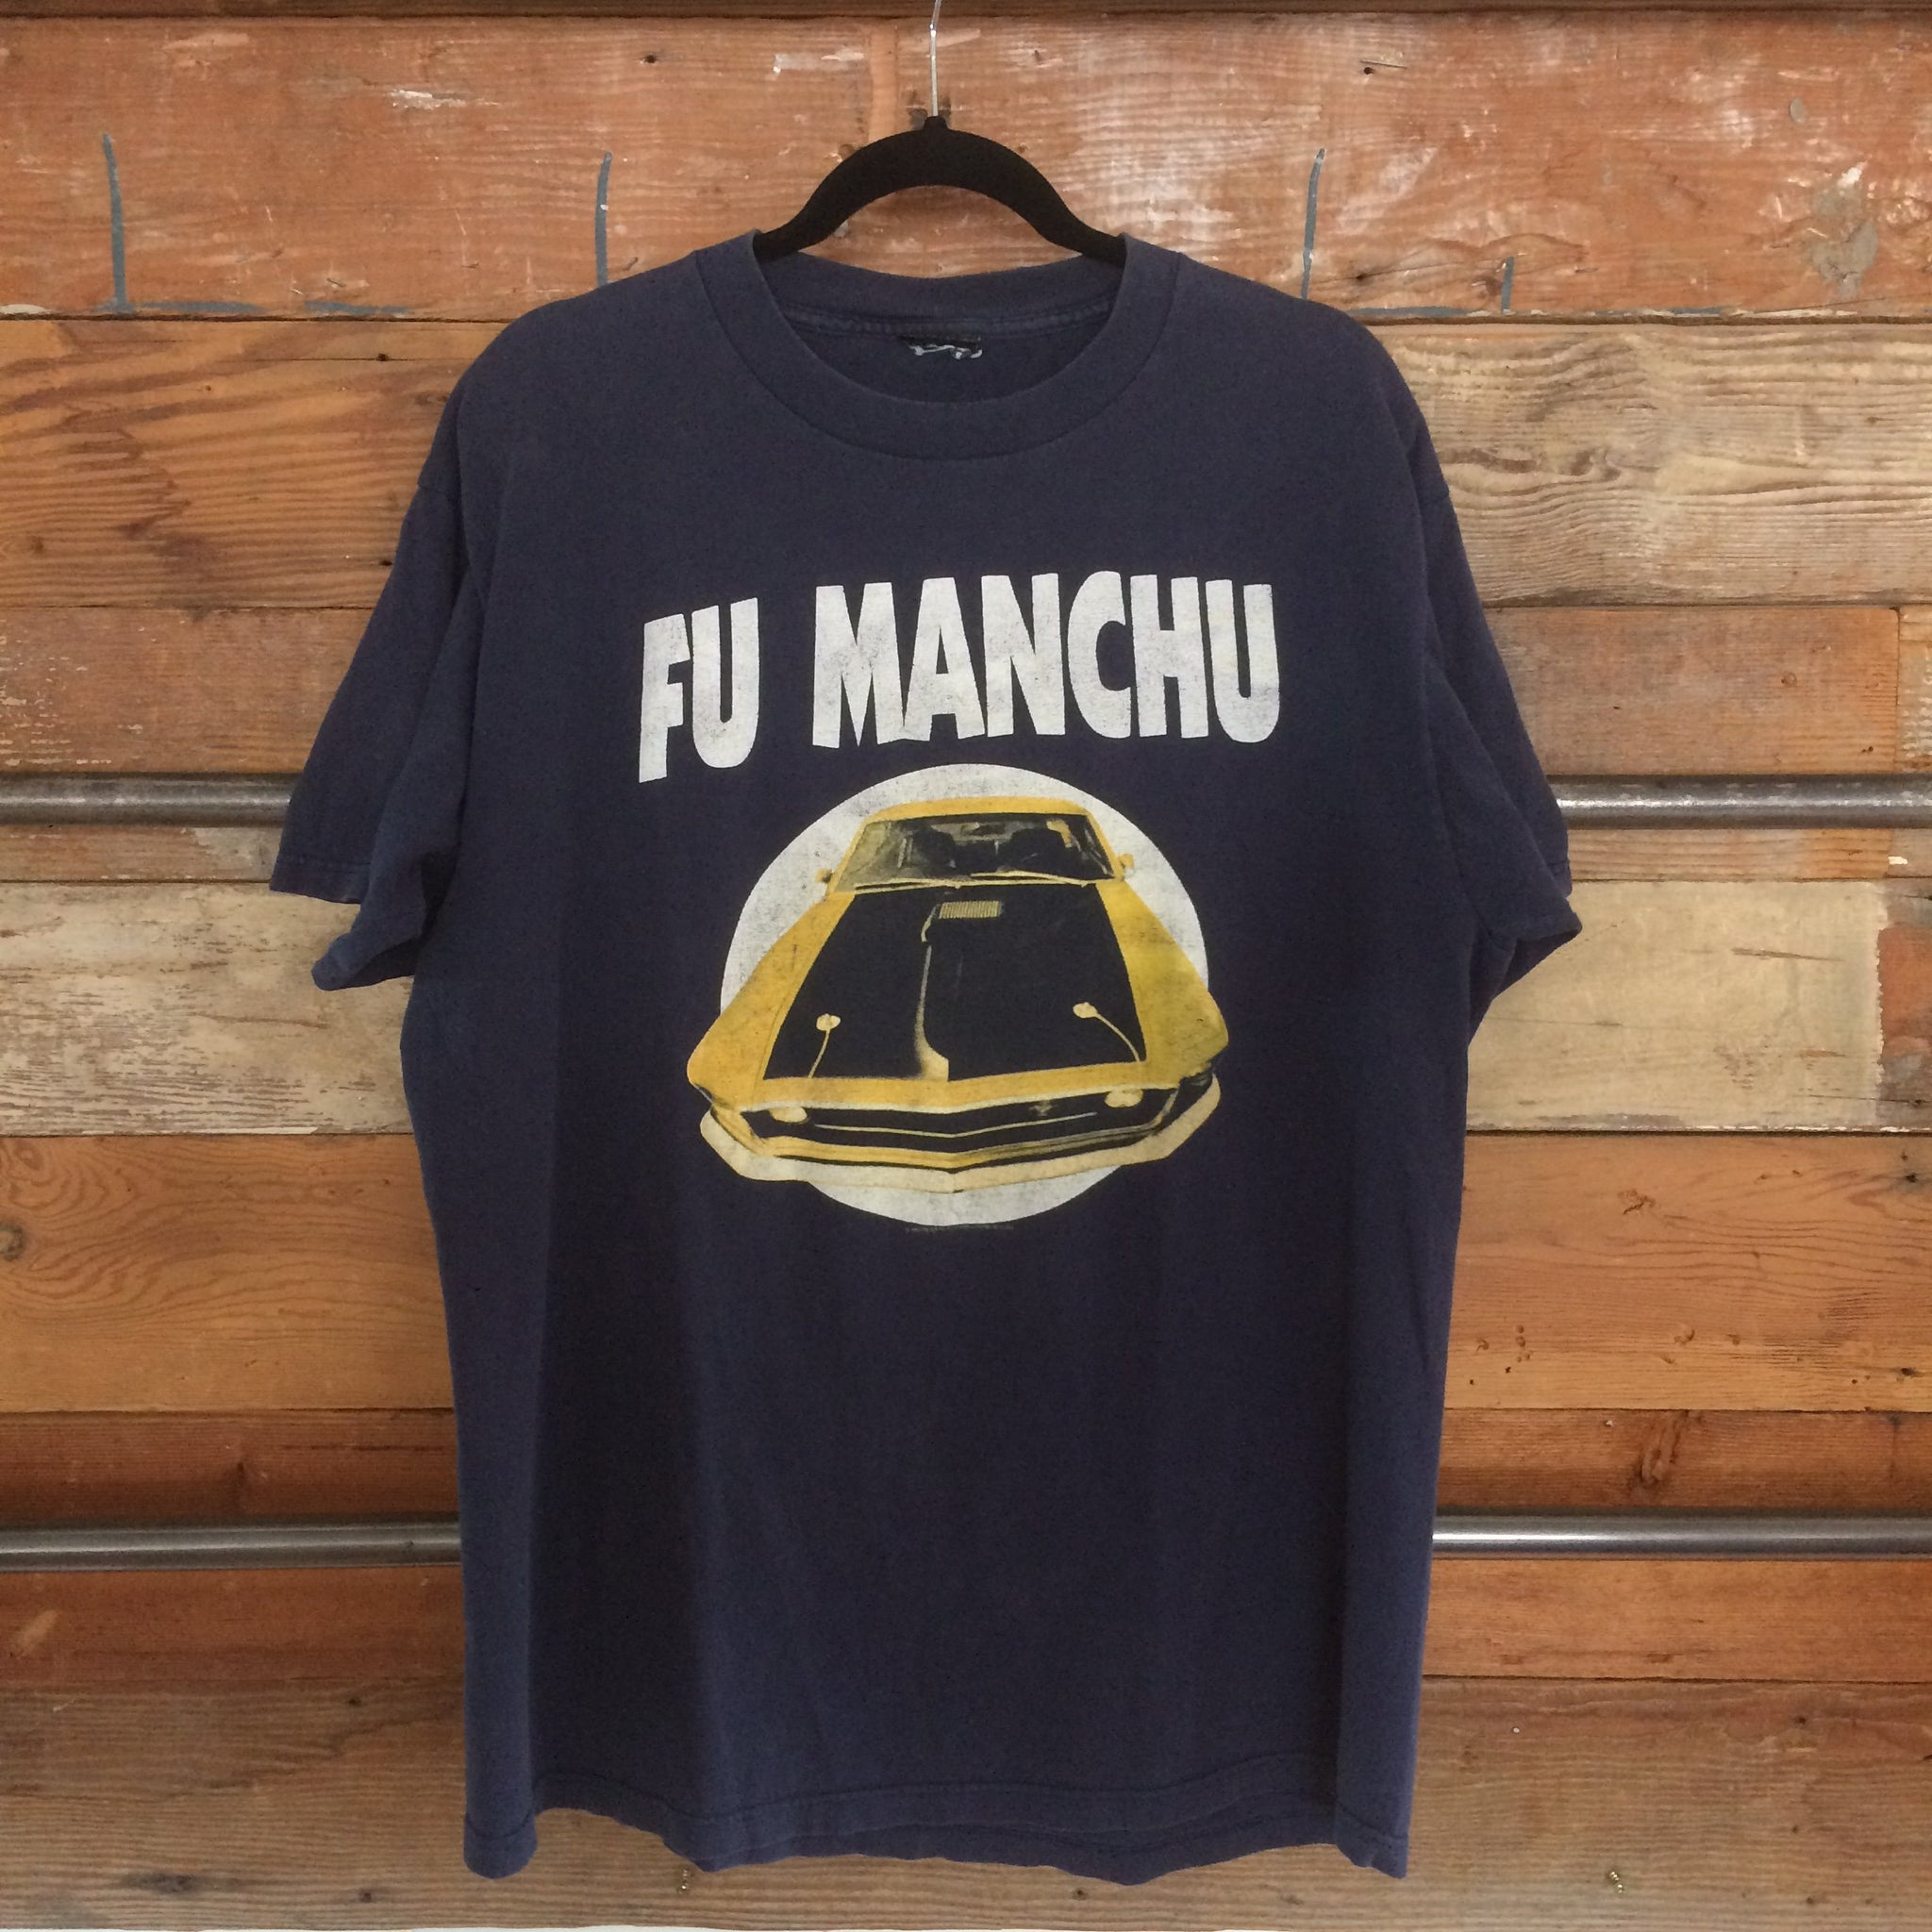 FU MANCHU - Manual Stick T-shirt (XL)